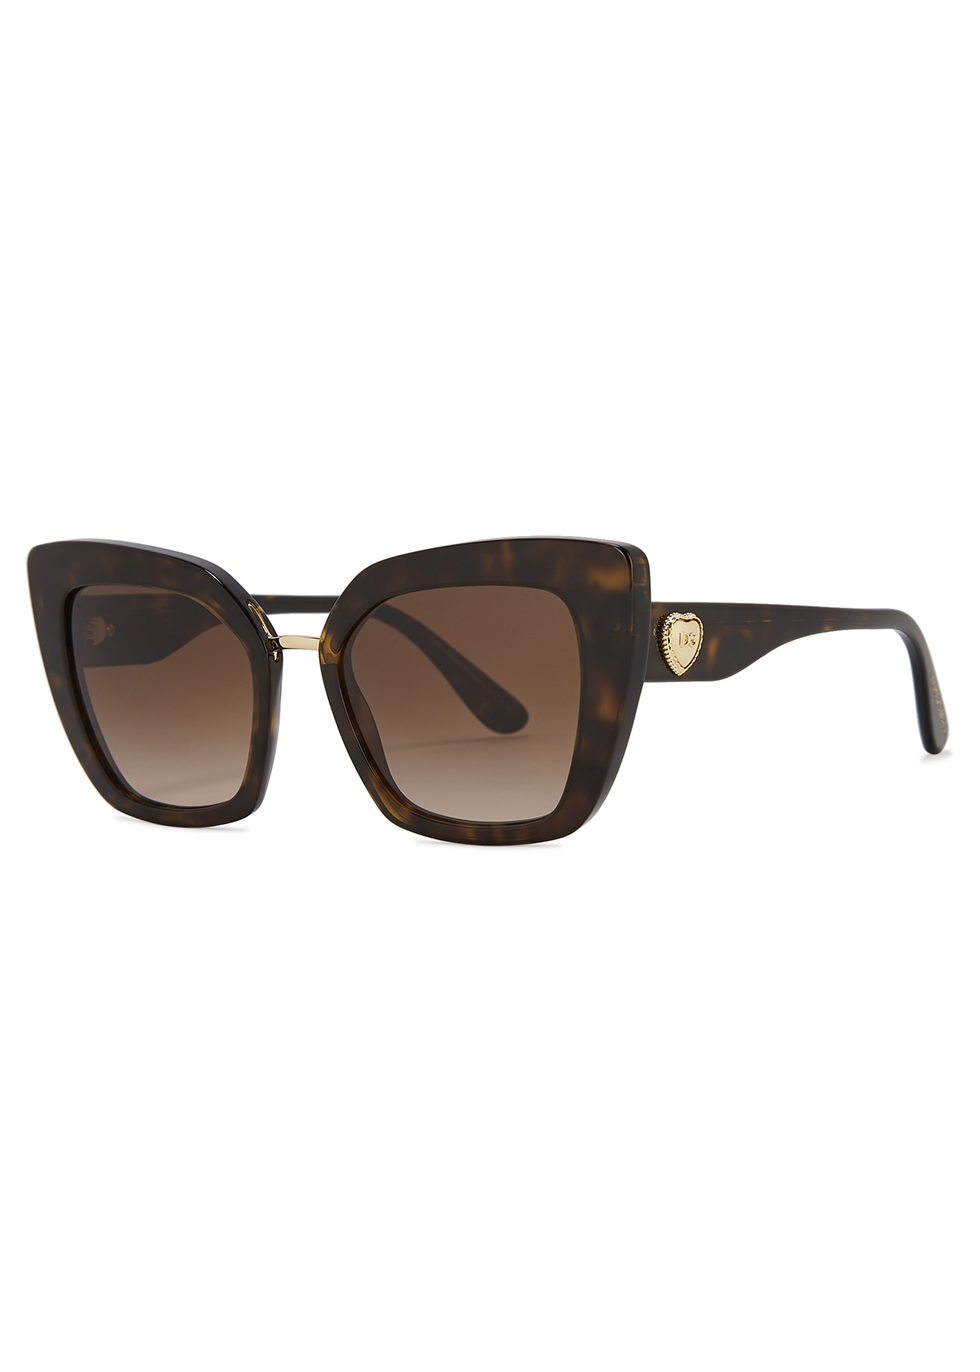 Oversized tortoiseshell cat-eye sunglasses - Dolce & Gabbana